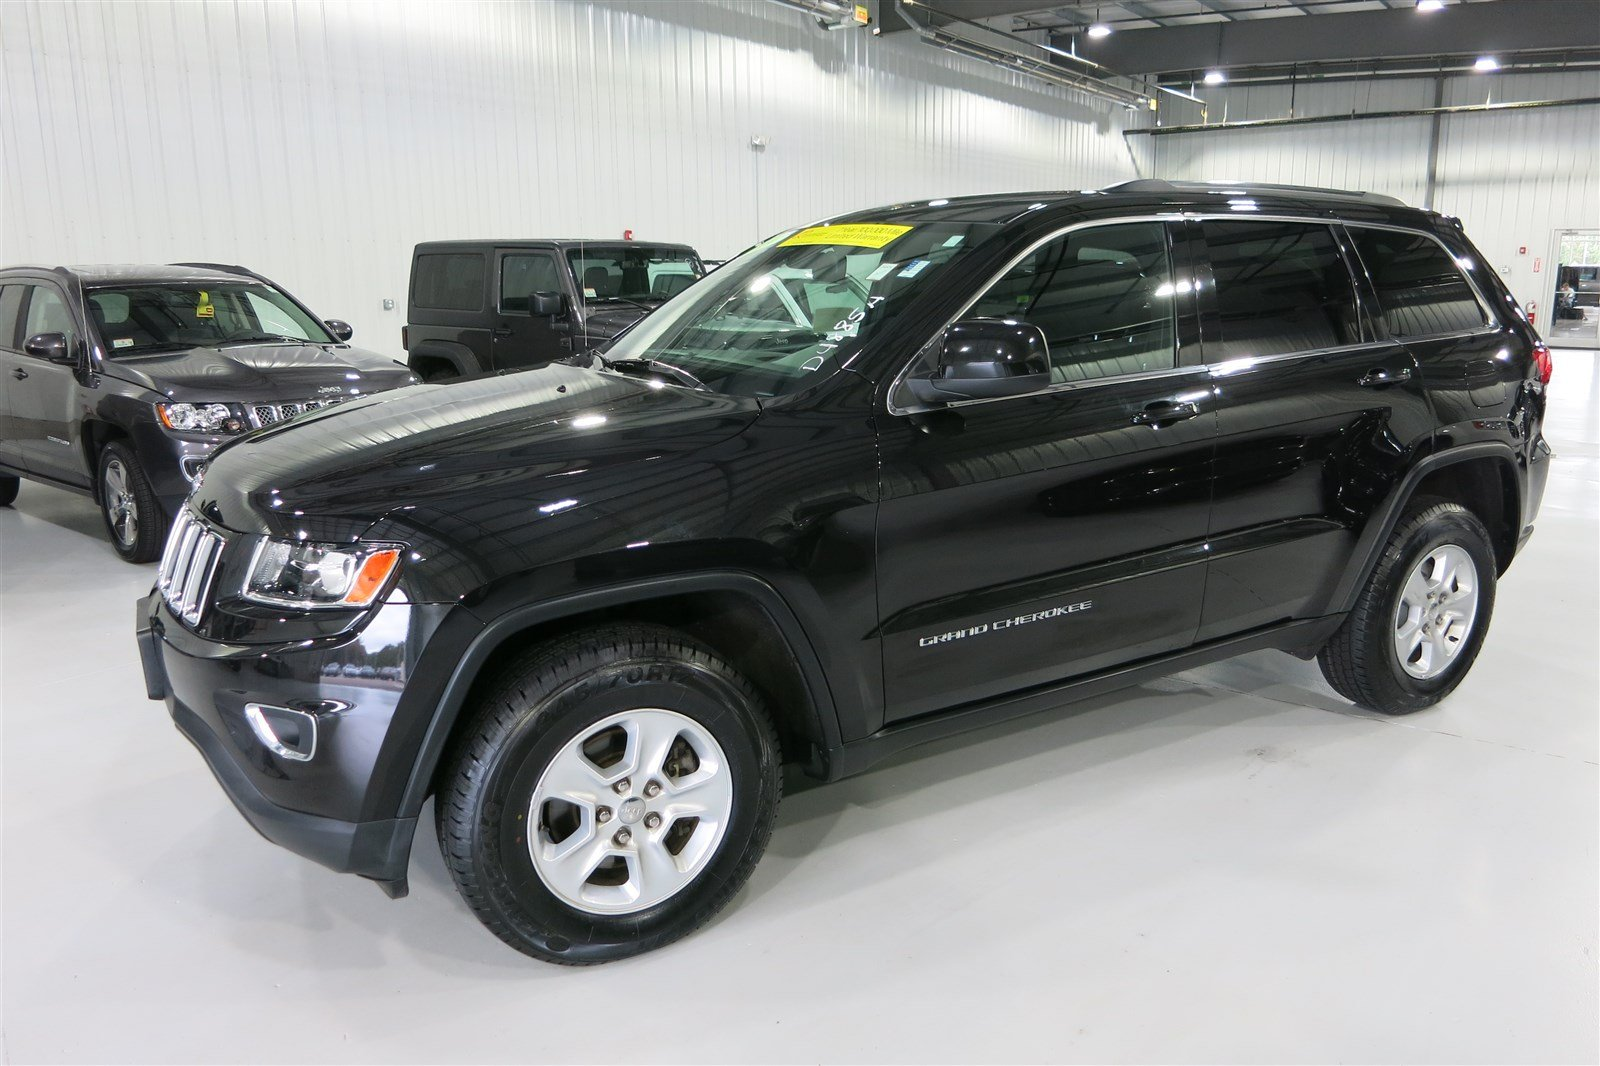 pre owned 2014 jeep grand cherokee lare sport utility in marshfield d4885a quirk chrysler. Black Bedroom Furniture Sets. Home Design Ideas